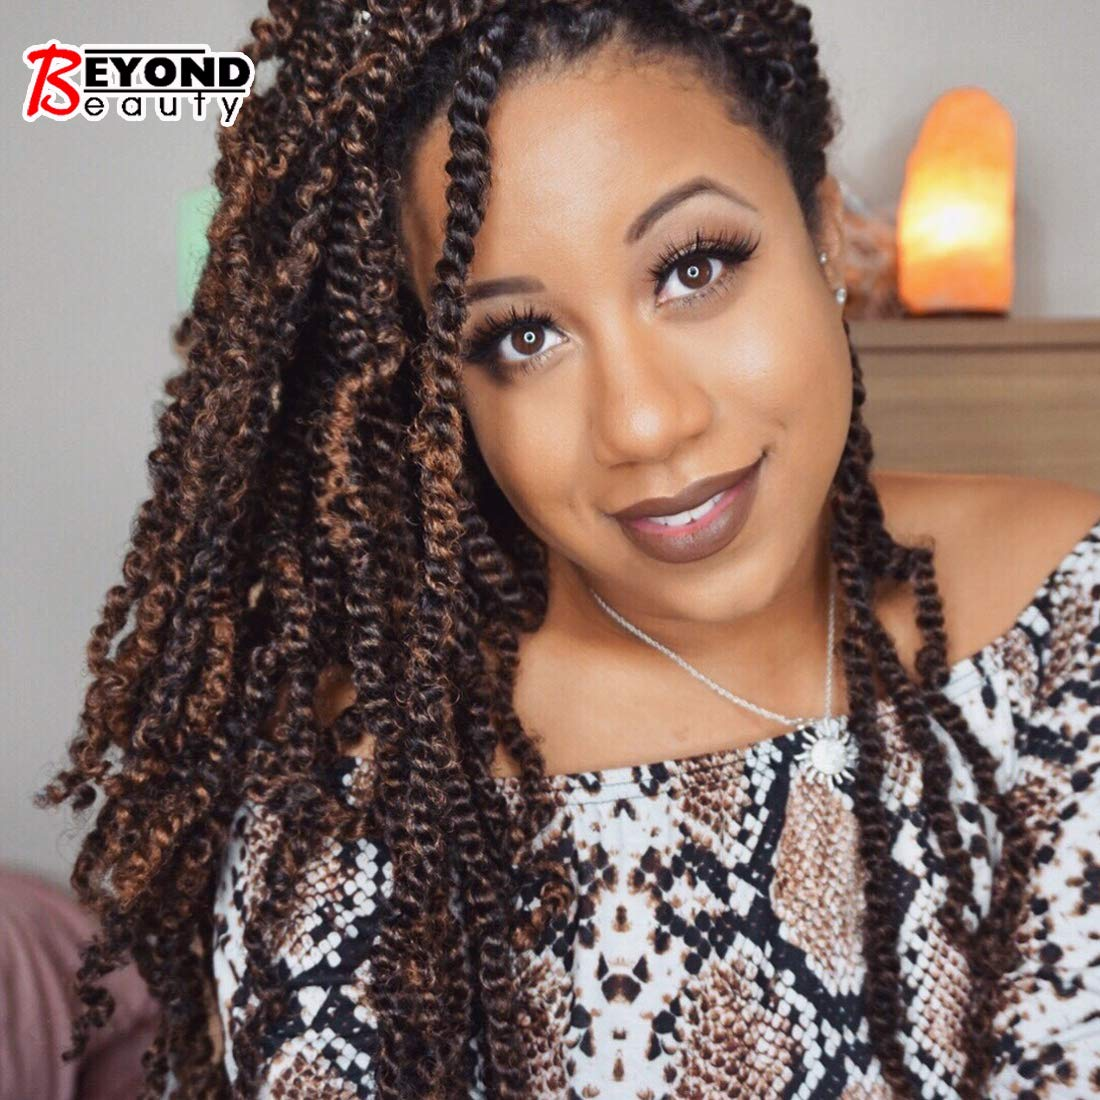 3 Pack Spring Twist Crochet Braids Bomb Twist Crochet Hair Ombre Colors Synthetic Fluffy Hair Extension 8inch 110g(T1B-30) by Beyond Beauty